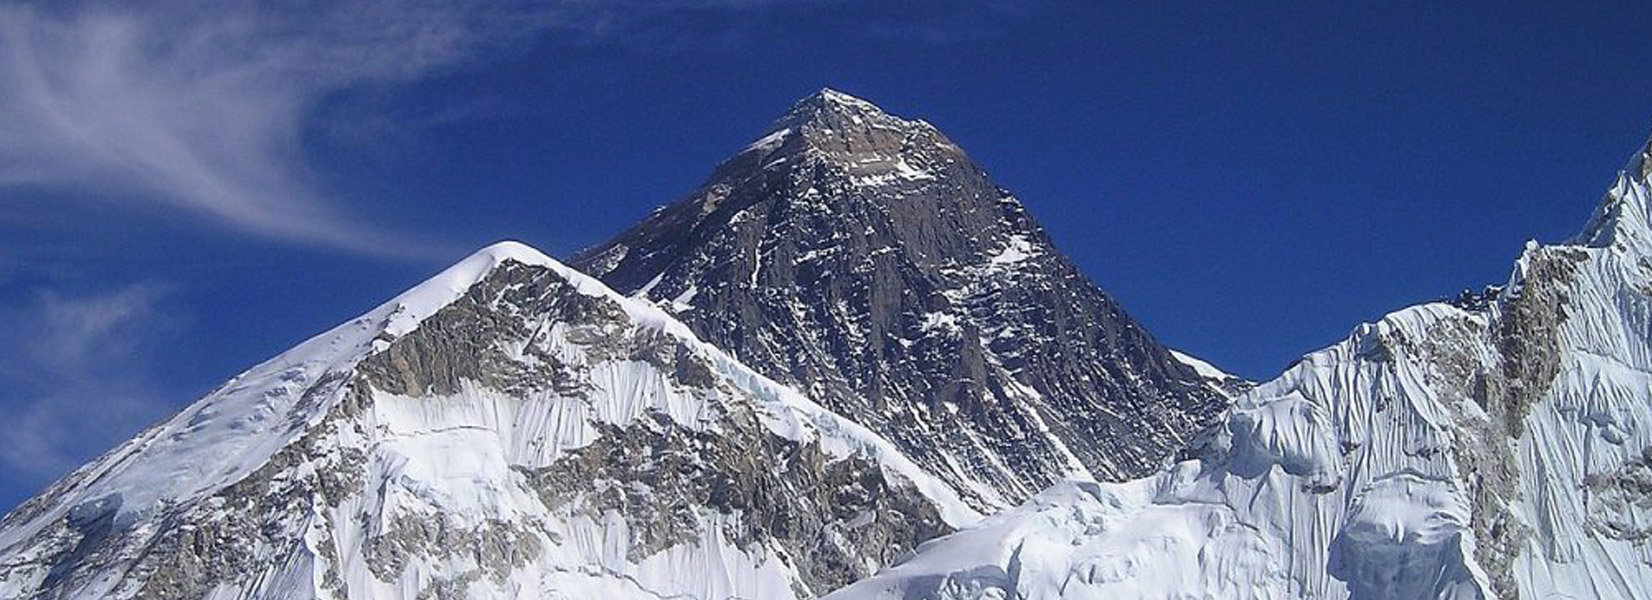 Mt.-Everest-Expedition